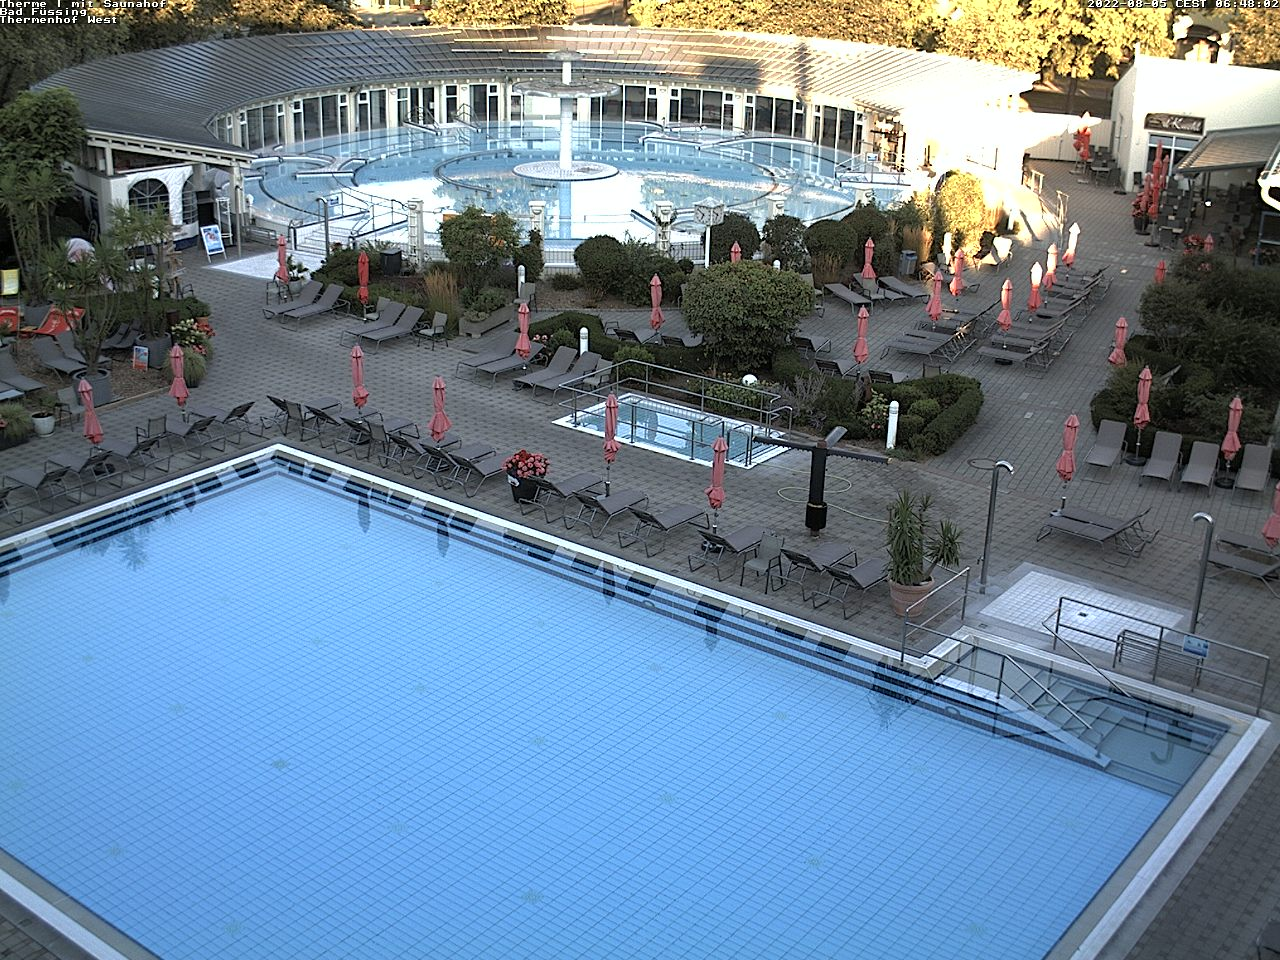 Webcam 1 – Therme 1 mit Saunahof